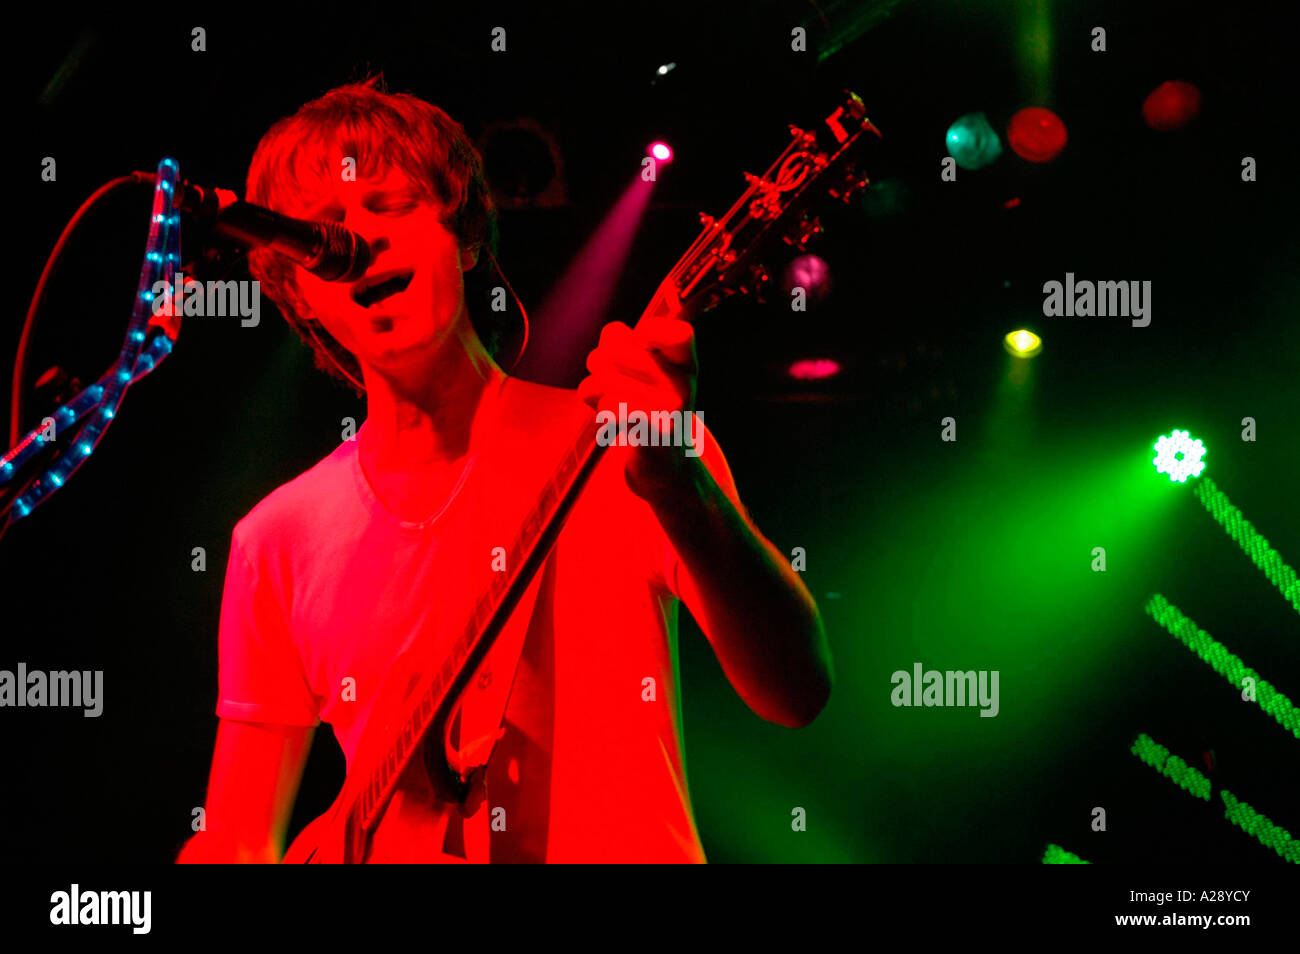 The Delays playing at Bud Rising in 2005, Greg Gilbert - Stock Image